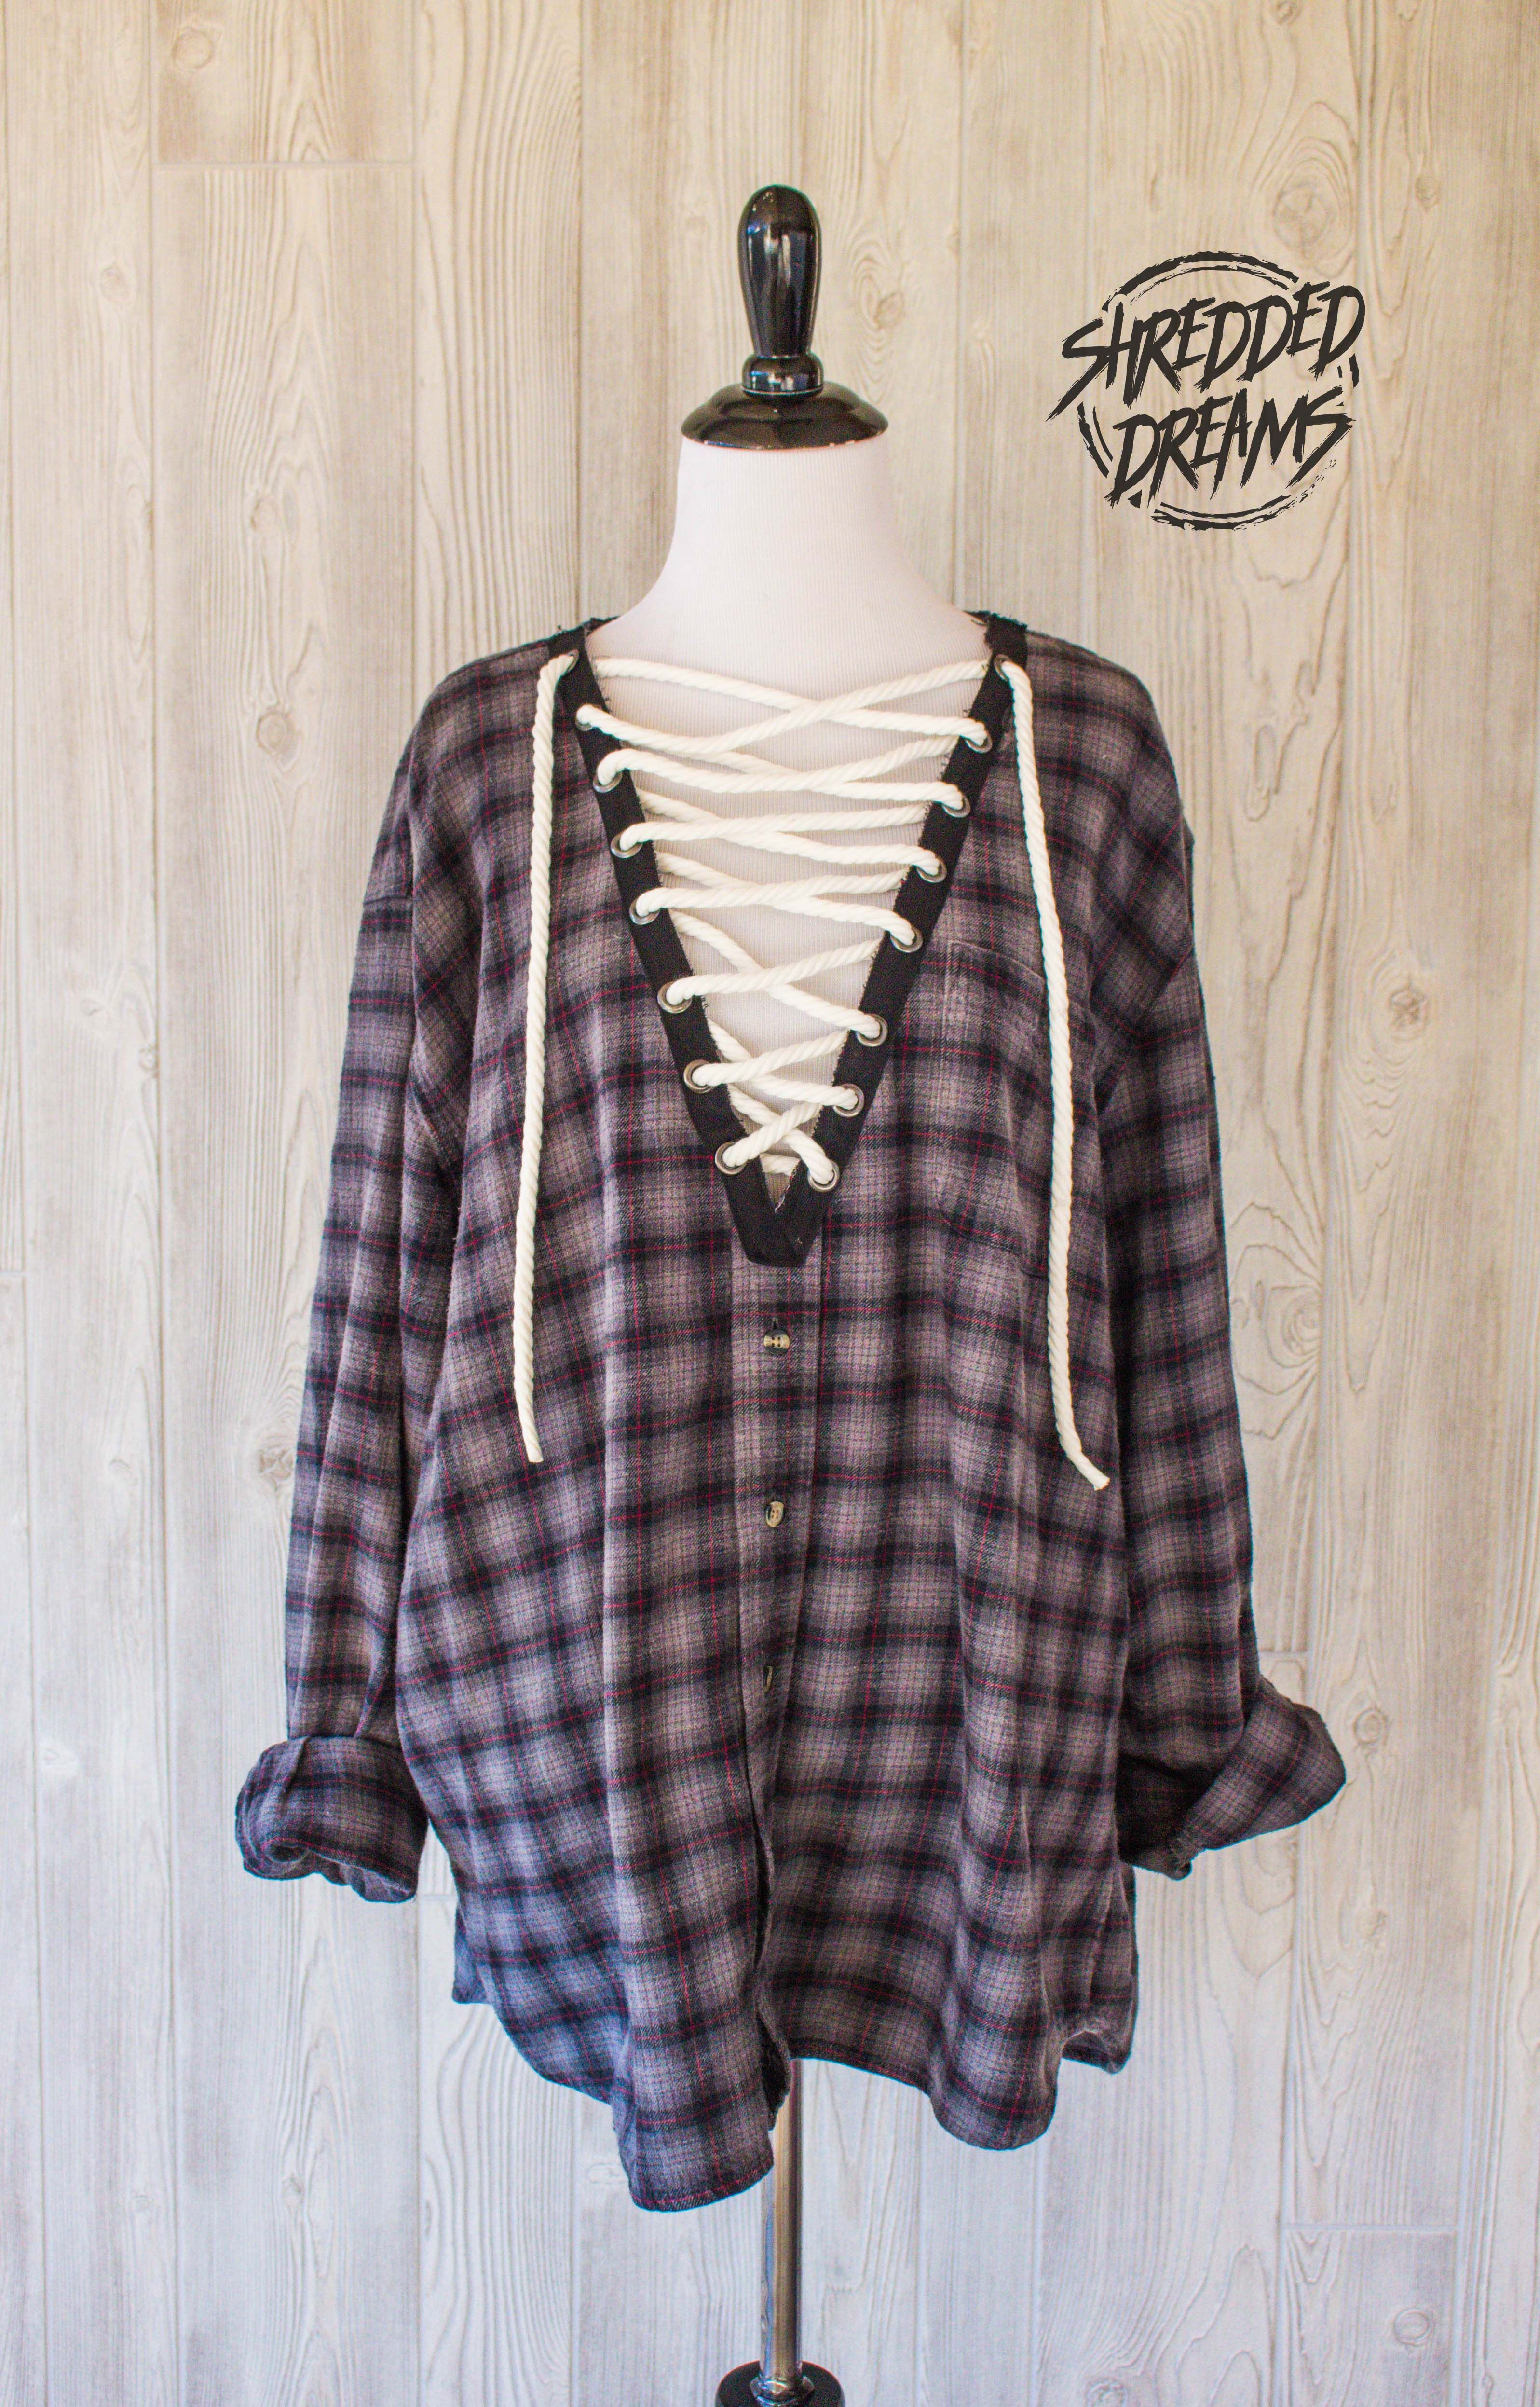 Grunge flannel outfits  Custom hand laced grunge flannel shirt from Shredded Dreams